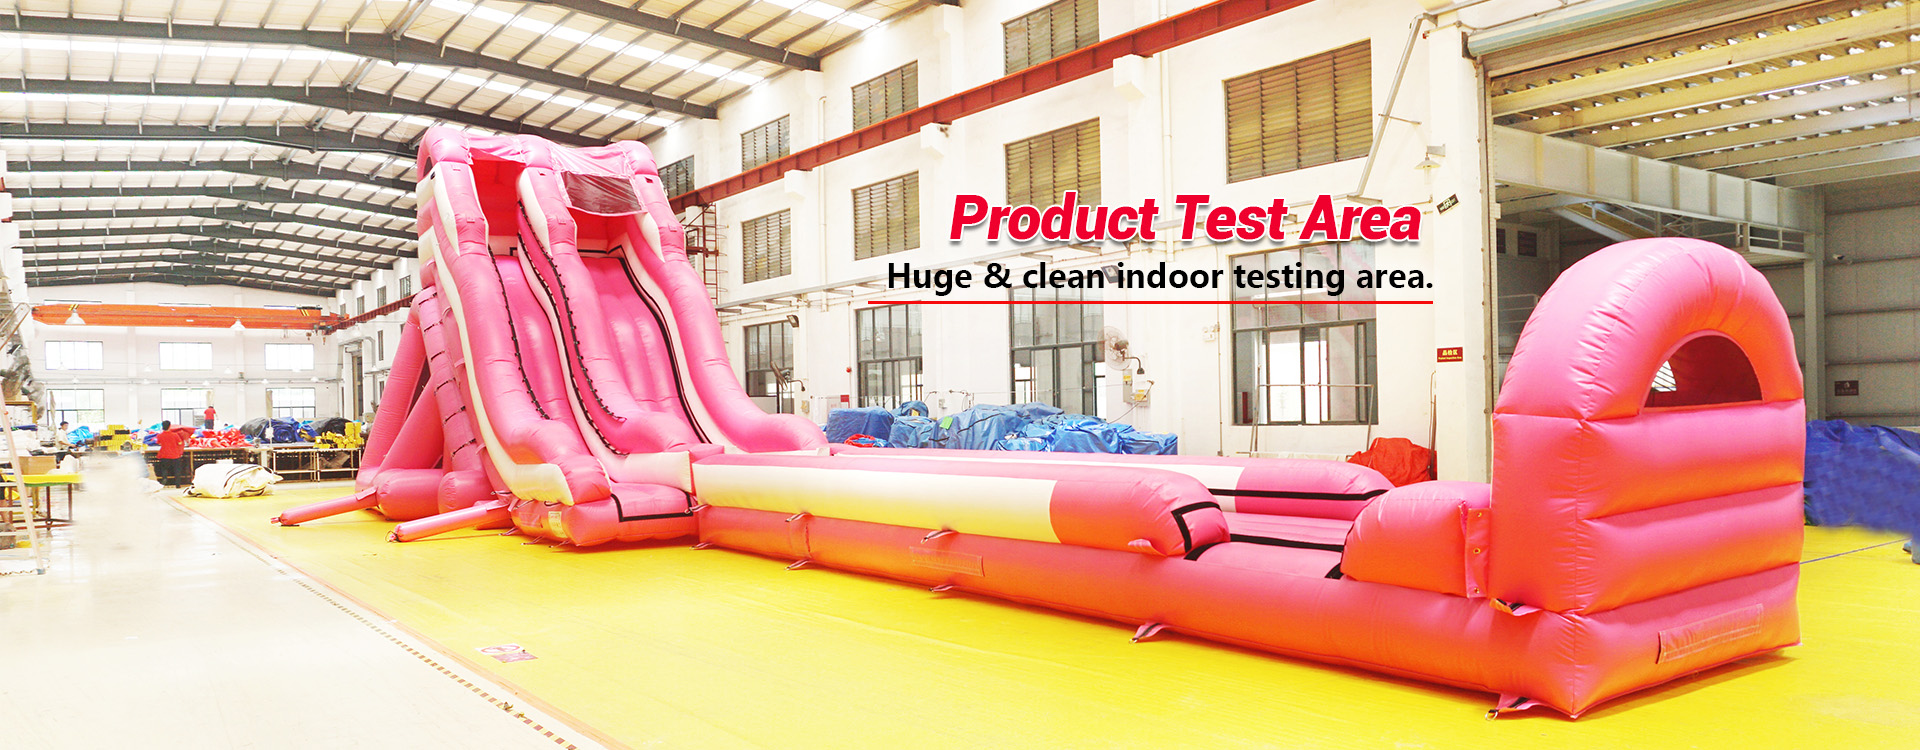 Product Test Area